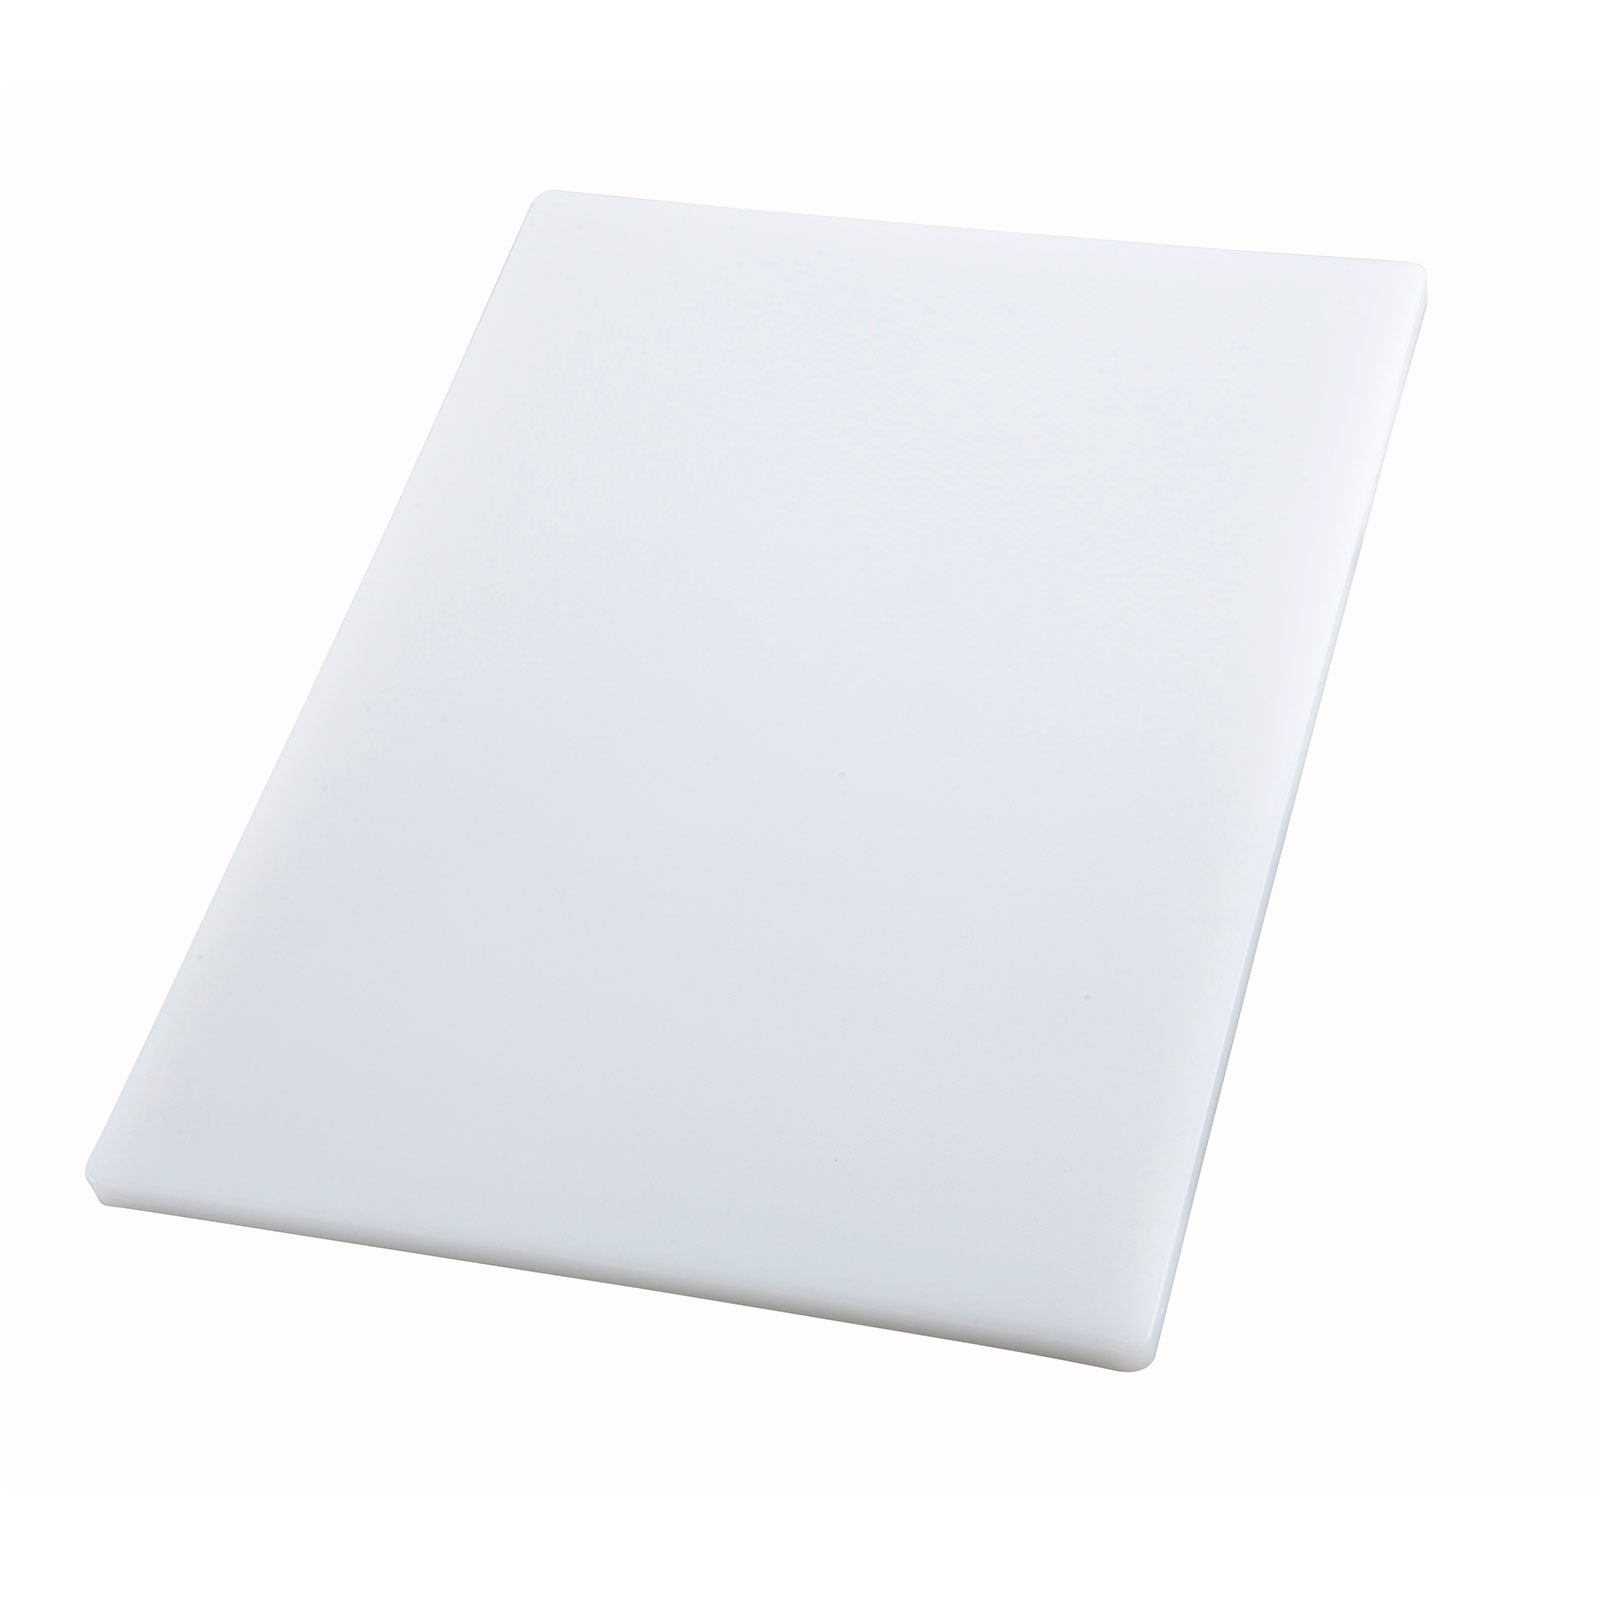 Winco CBH-1218 cutting board, plastic